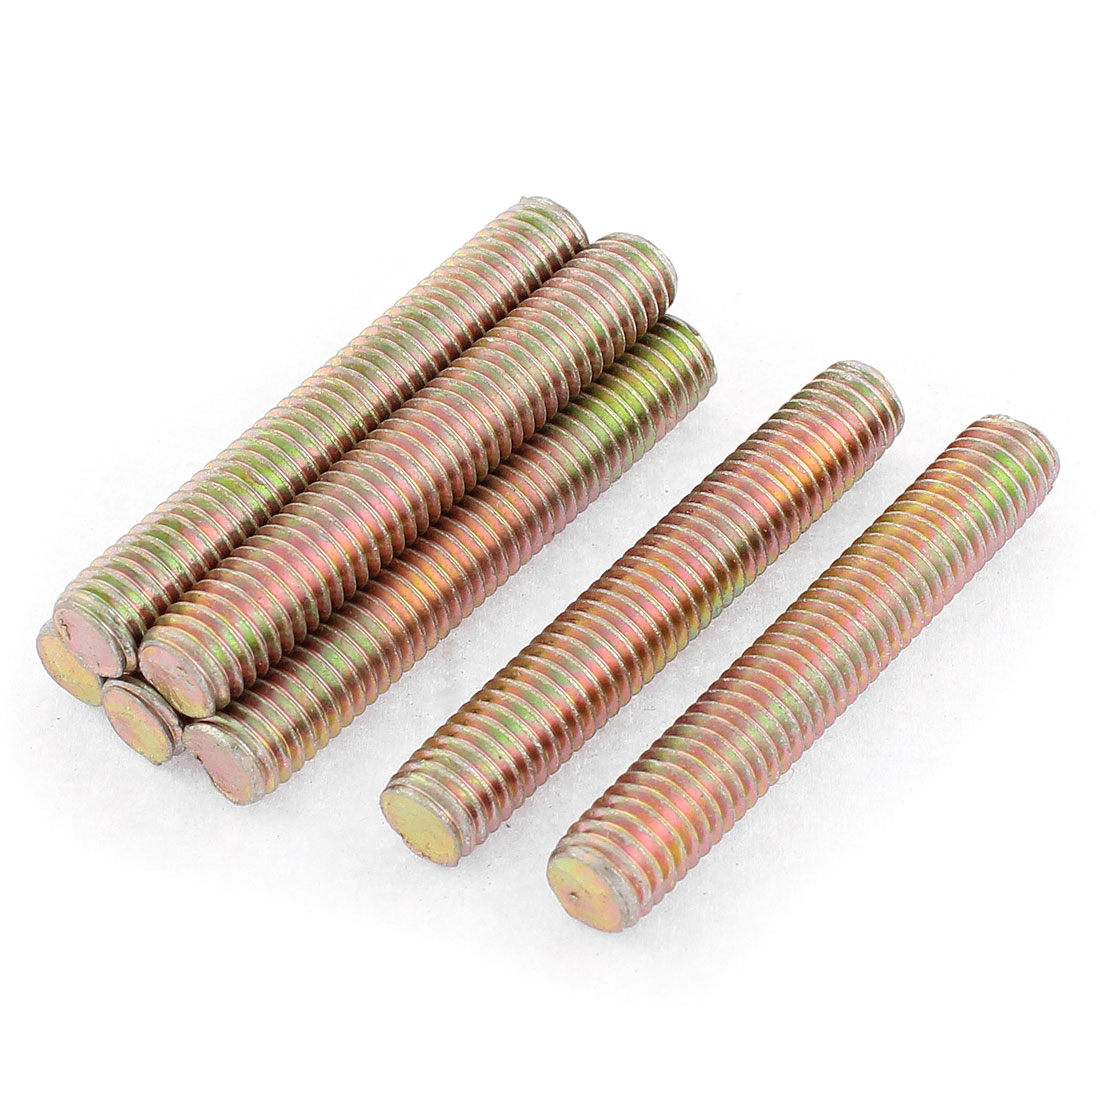 7 Pcs 1.25mm Pitch M8 x 50mm Male Full Thread Bronze Tone Metal Threaded Rod Bar Screw